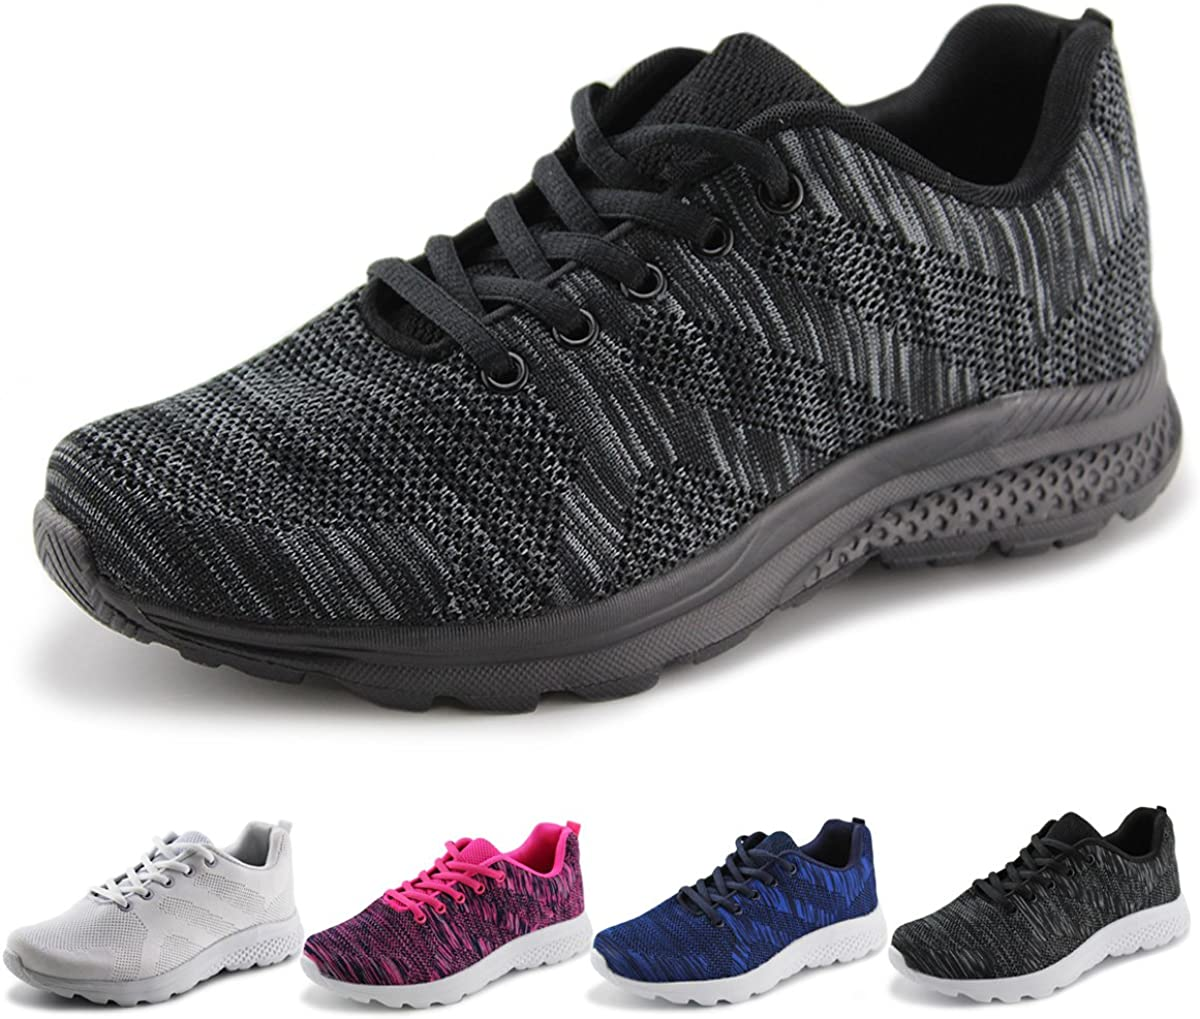 Jabasic Women s Breathable Knit Sports Running Shoes Casual Walking Sneaker